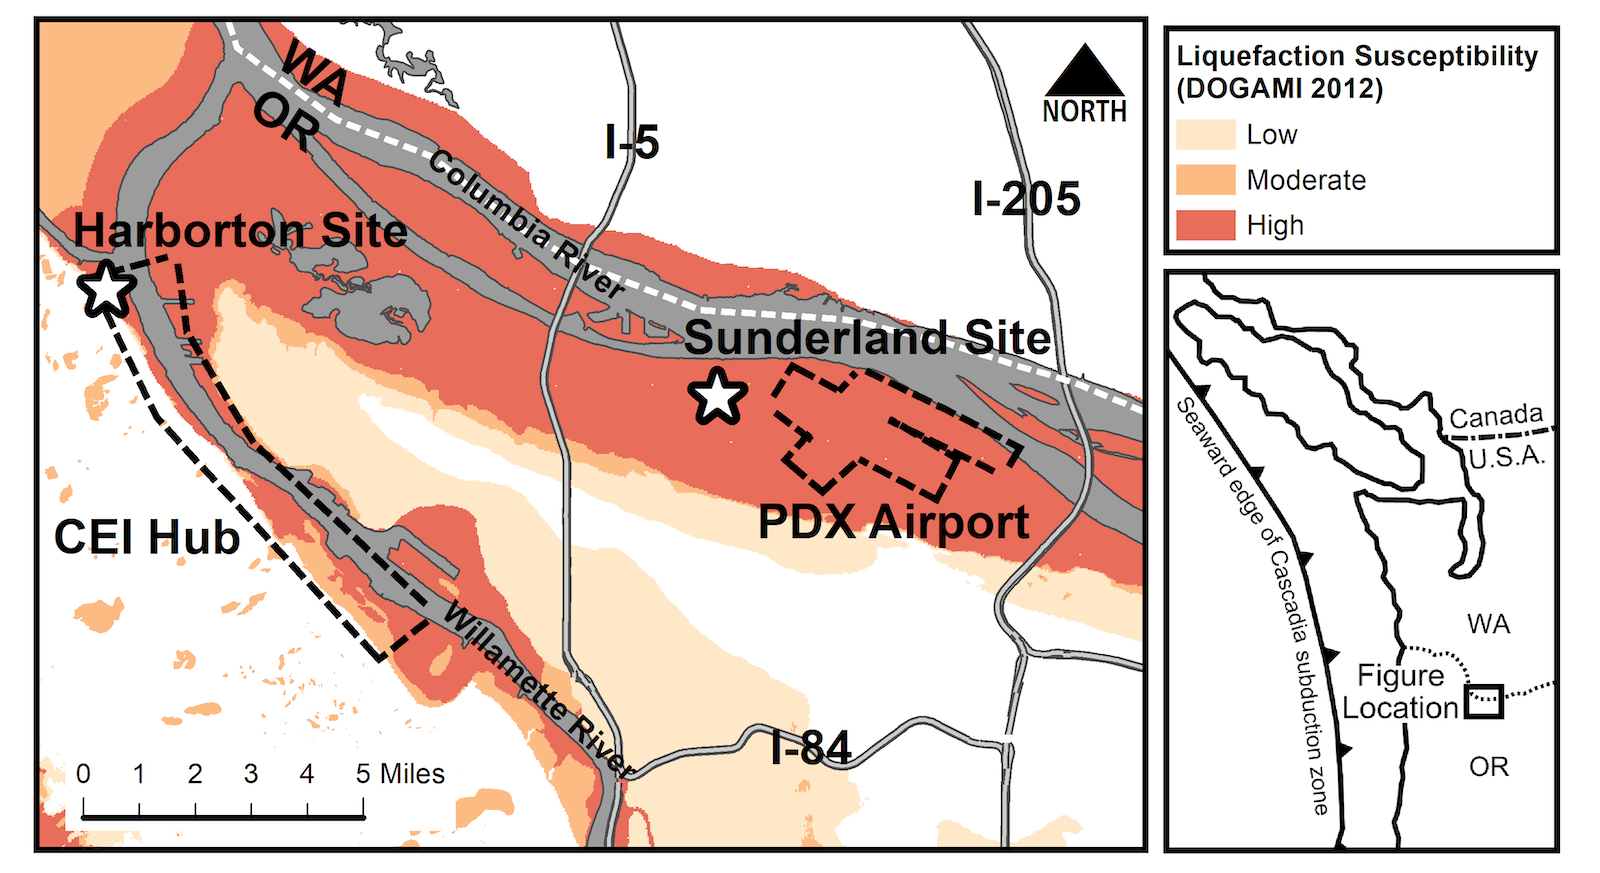 A map of the Portland, Oregon, area highlighting locations of two sites for the research to develop techniques for reducing soil damage as a result of earthquakes